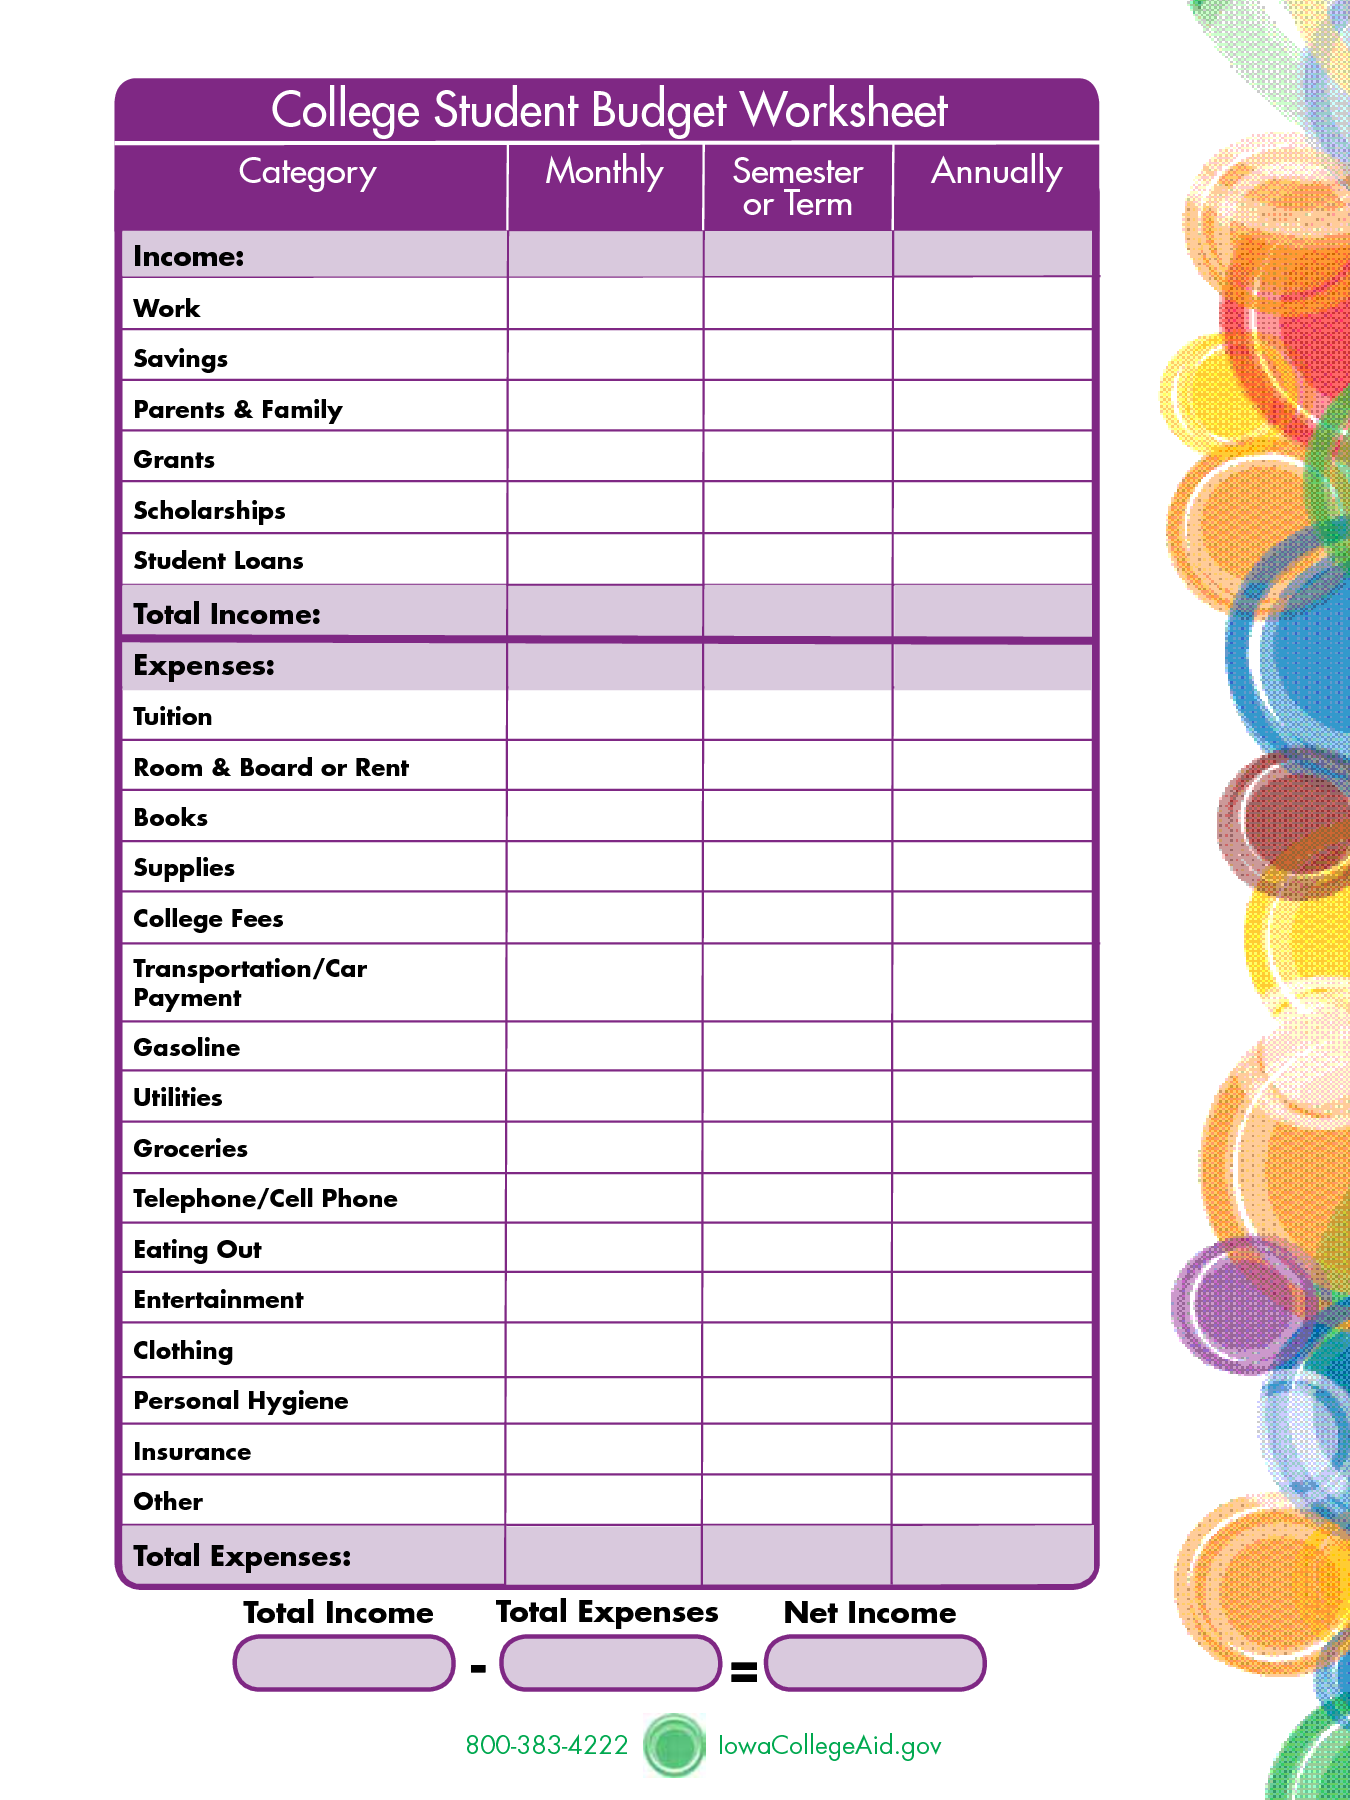 Printables Budgeting Worksheets For Students budget worksheet for college students davezan plustheapp